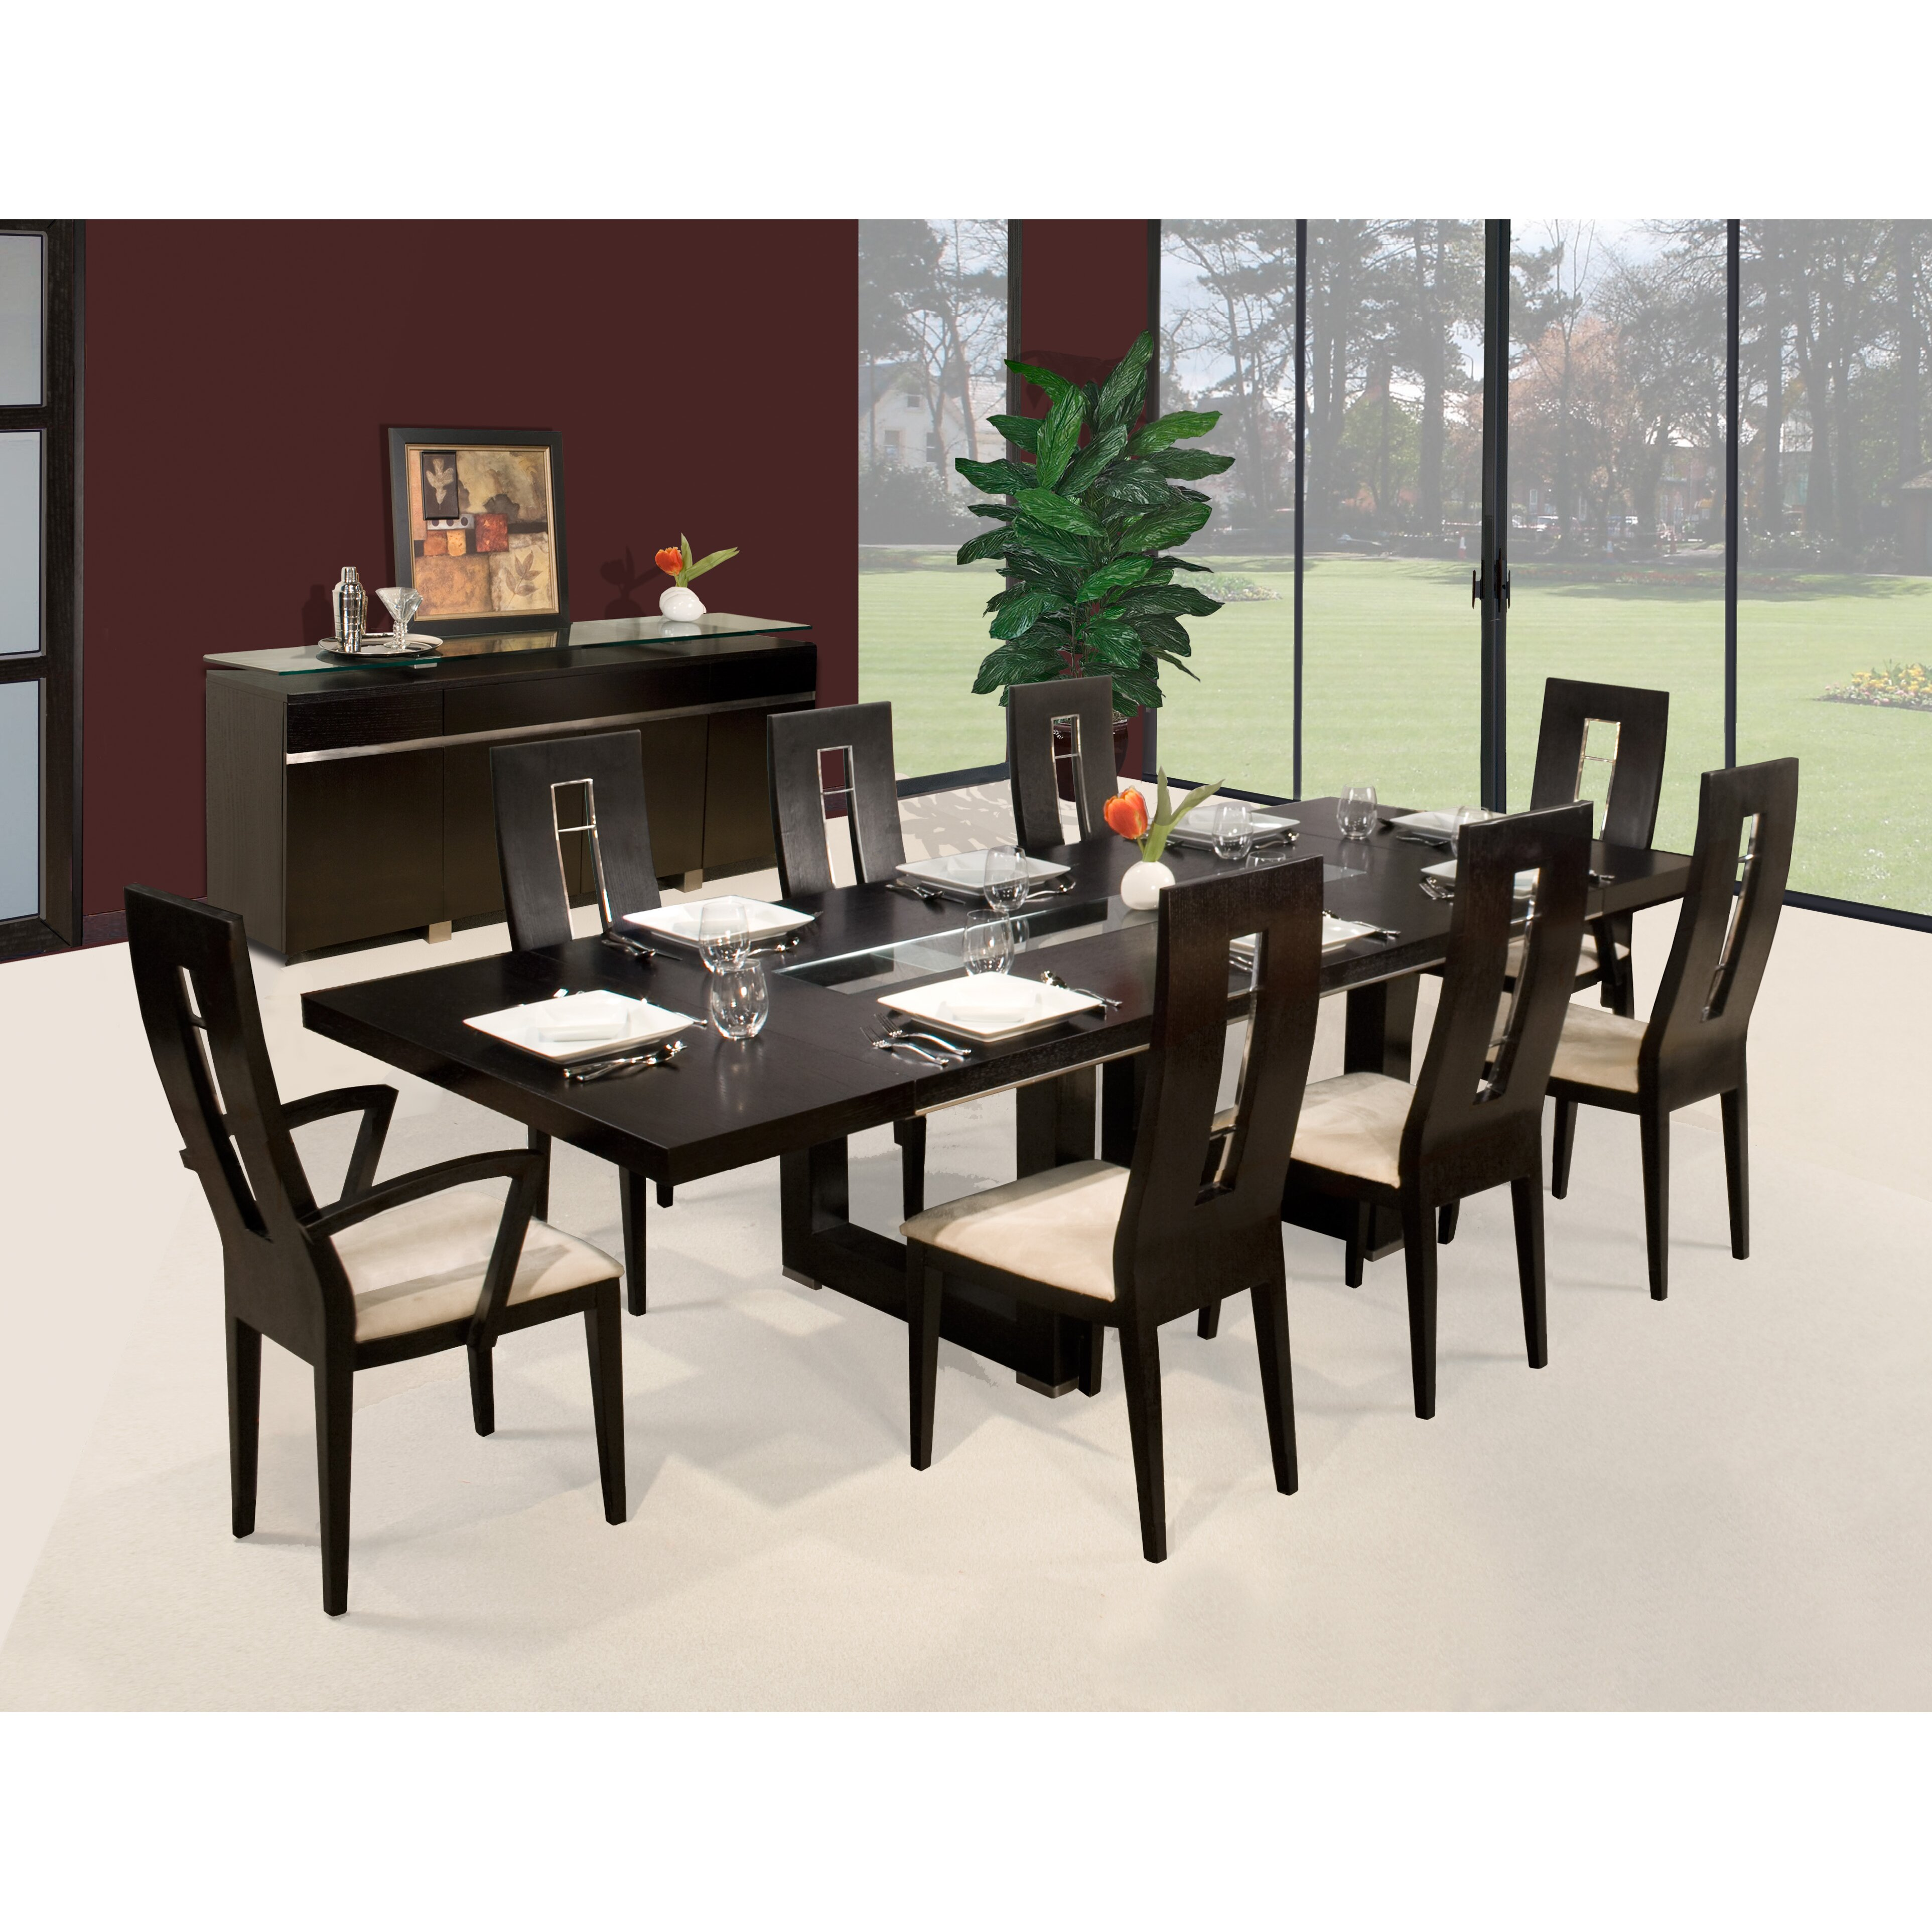 Sharelle furnishings novo 9 piece dining set reviews for Jardin 8 piece dining set